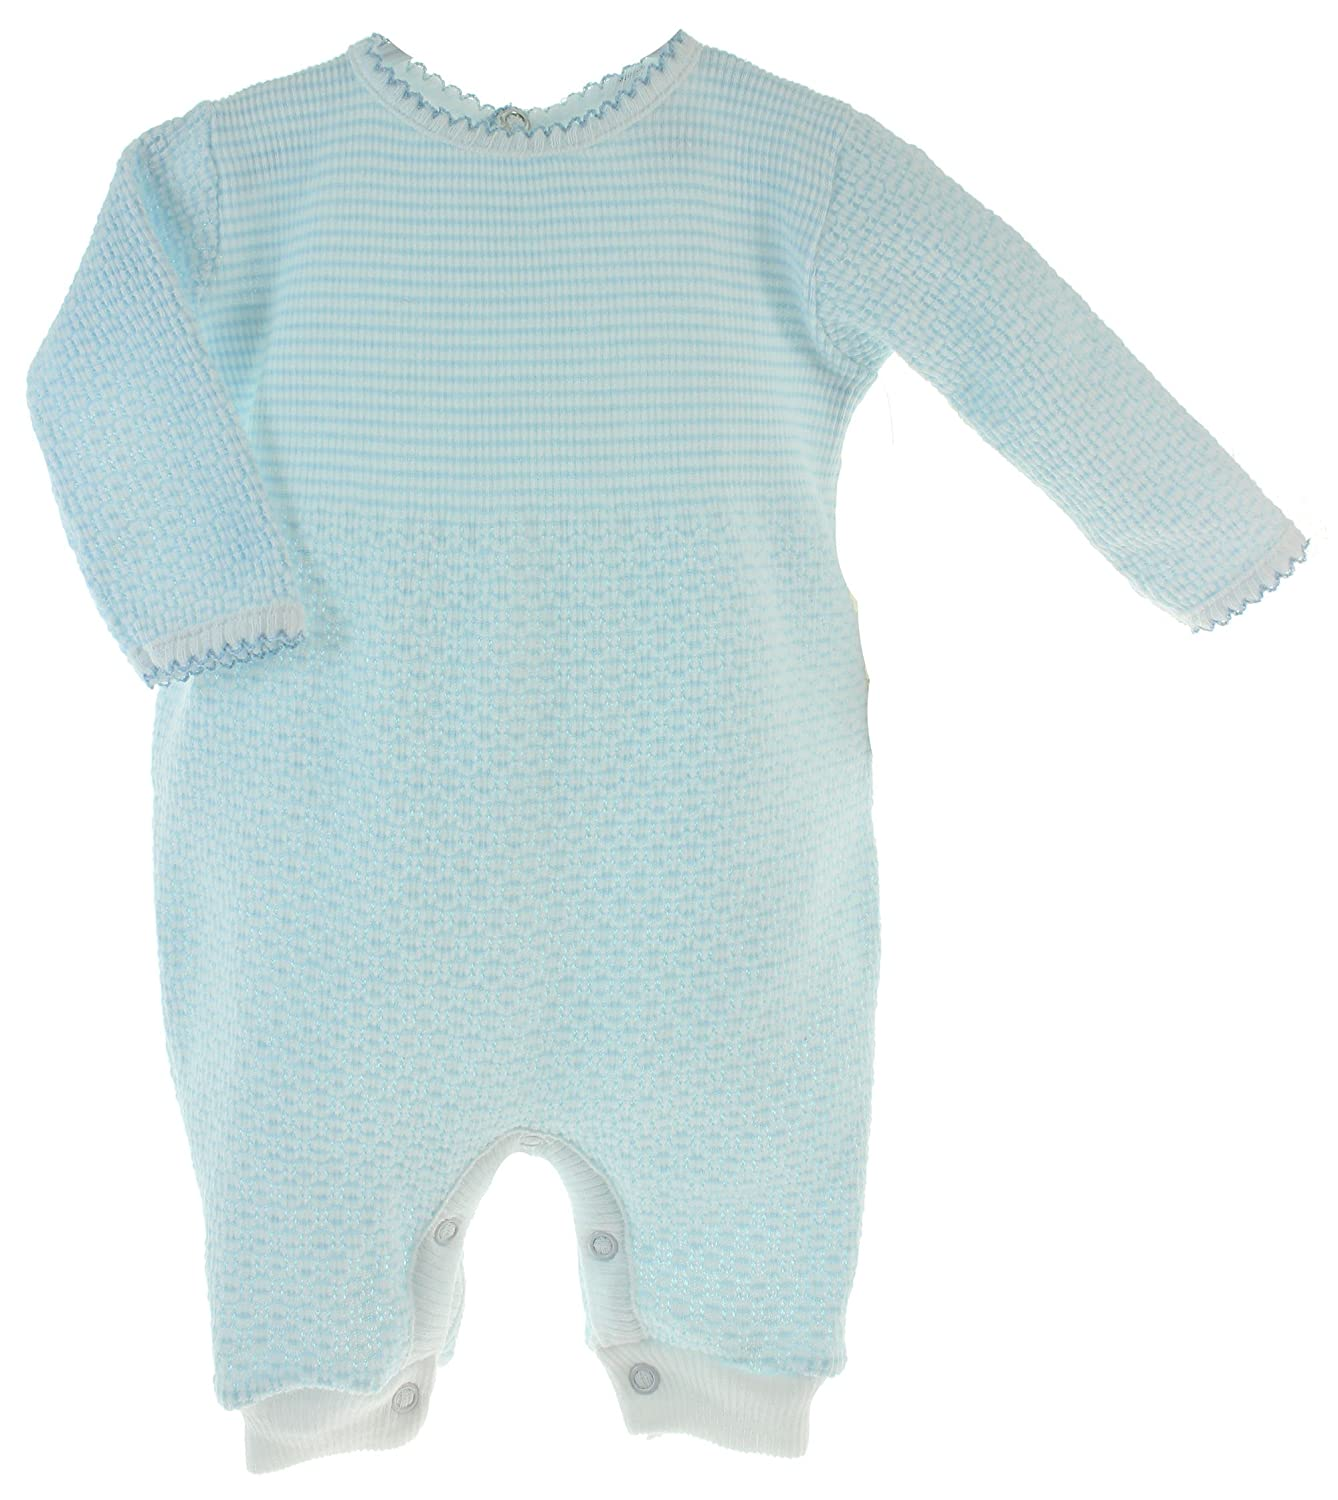 Paty Inc Baby Boys Take Home Sleeper Outfit Blue White Monogrammable